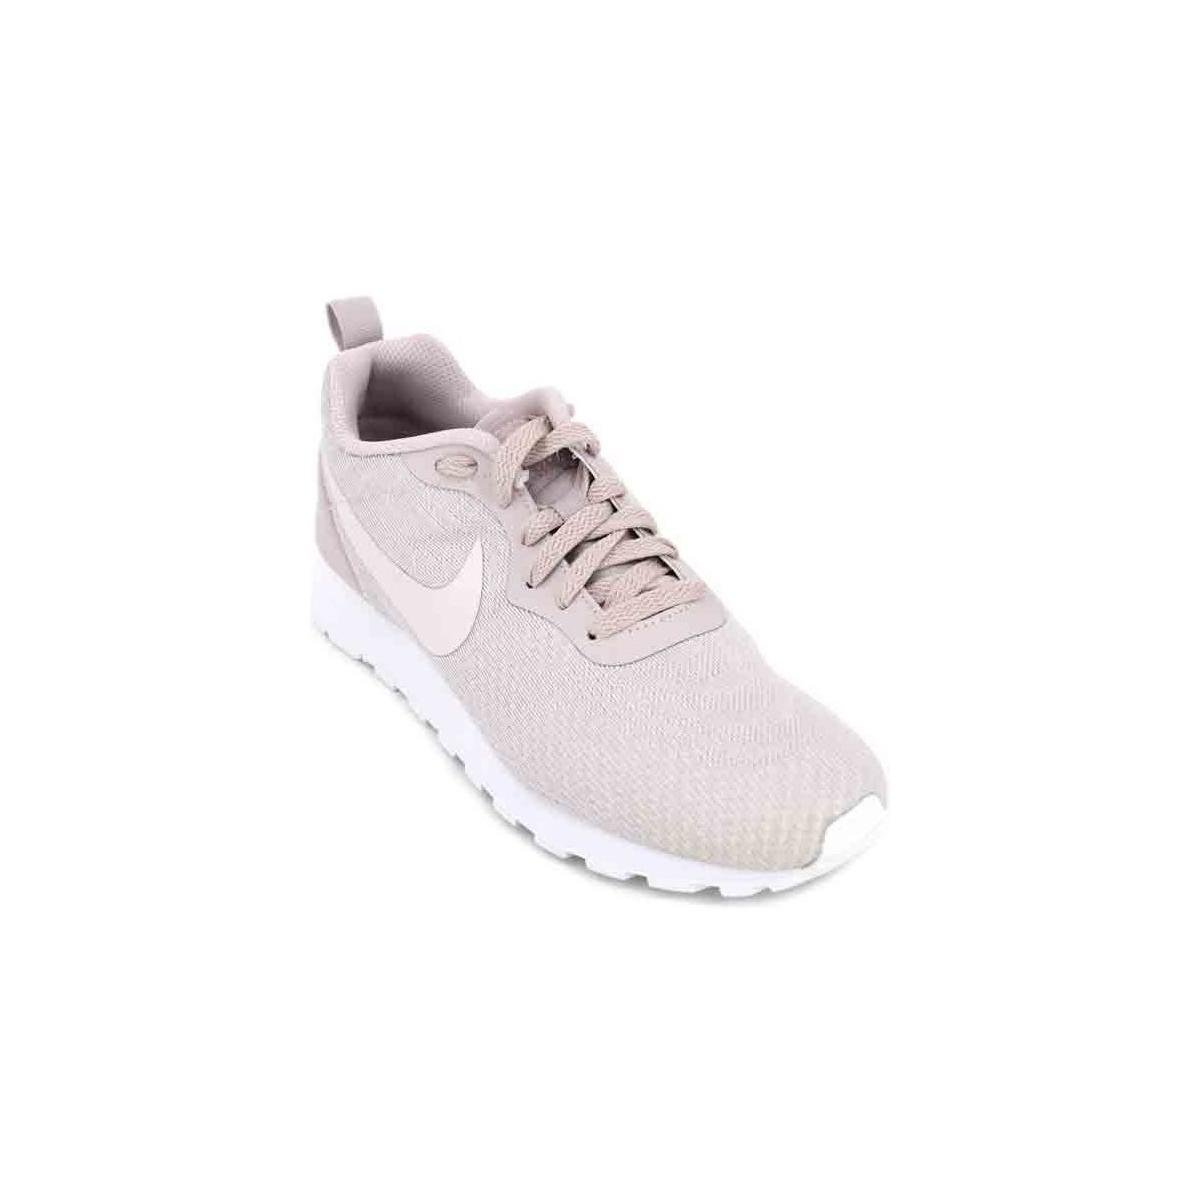 Nike Wmns Md Runner 2 Eng 916797 Women s Sneakers Women s Shoes ... 655fc491d249b